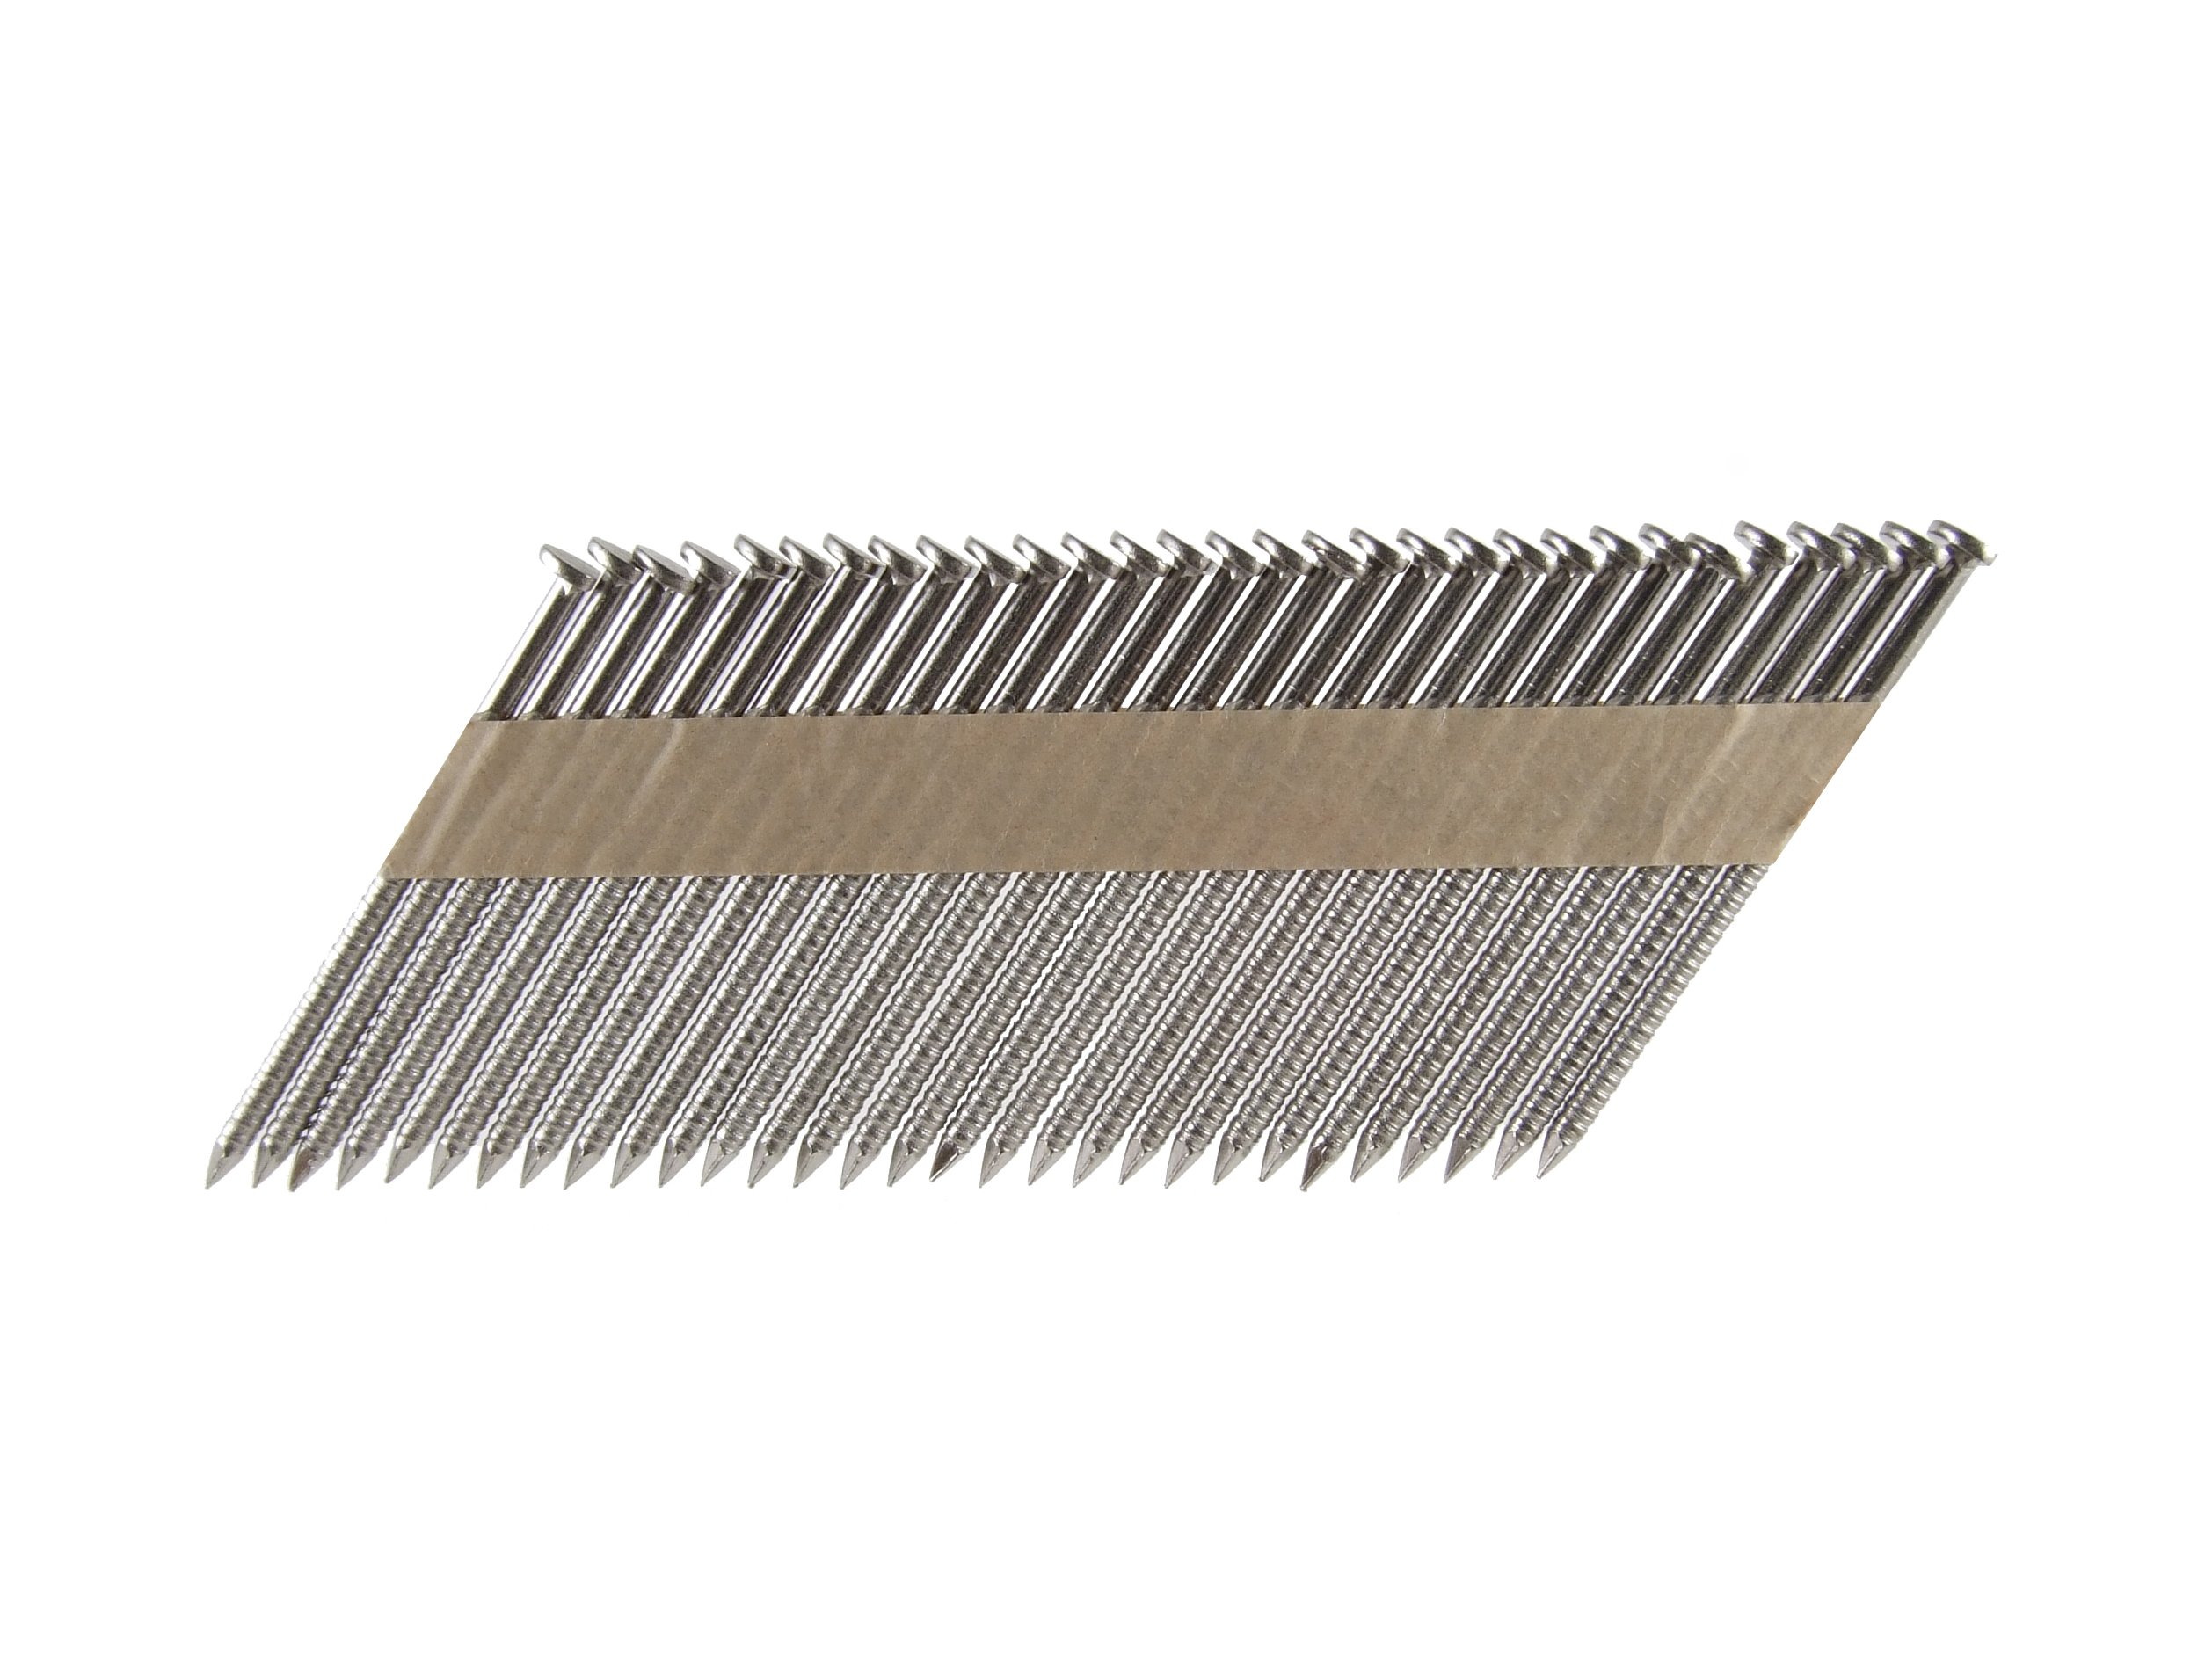 B&C Eagle 314X120RSS/33 Offset Round Head 3-1/4-Inch x .120 x 33 Degree S304 Stainless Steel Ring Shank Paper Tape Collated Framing Nails (1,000 per box)